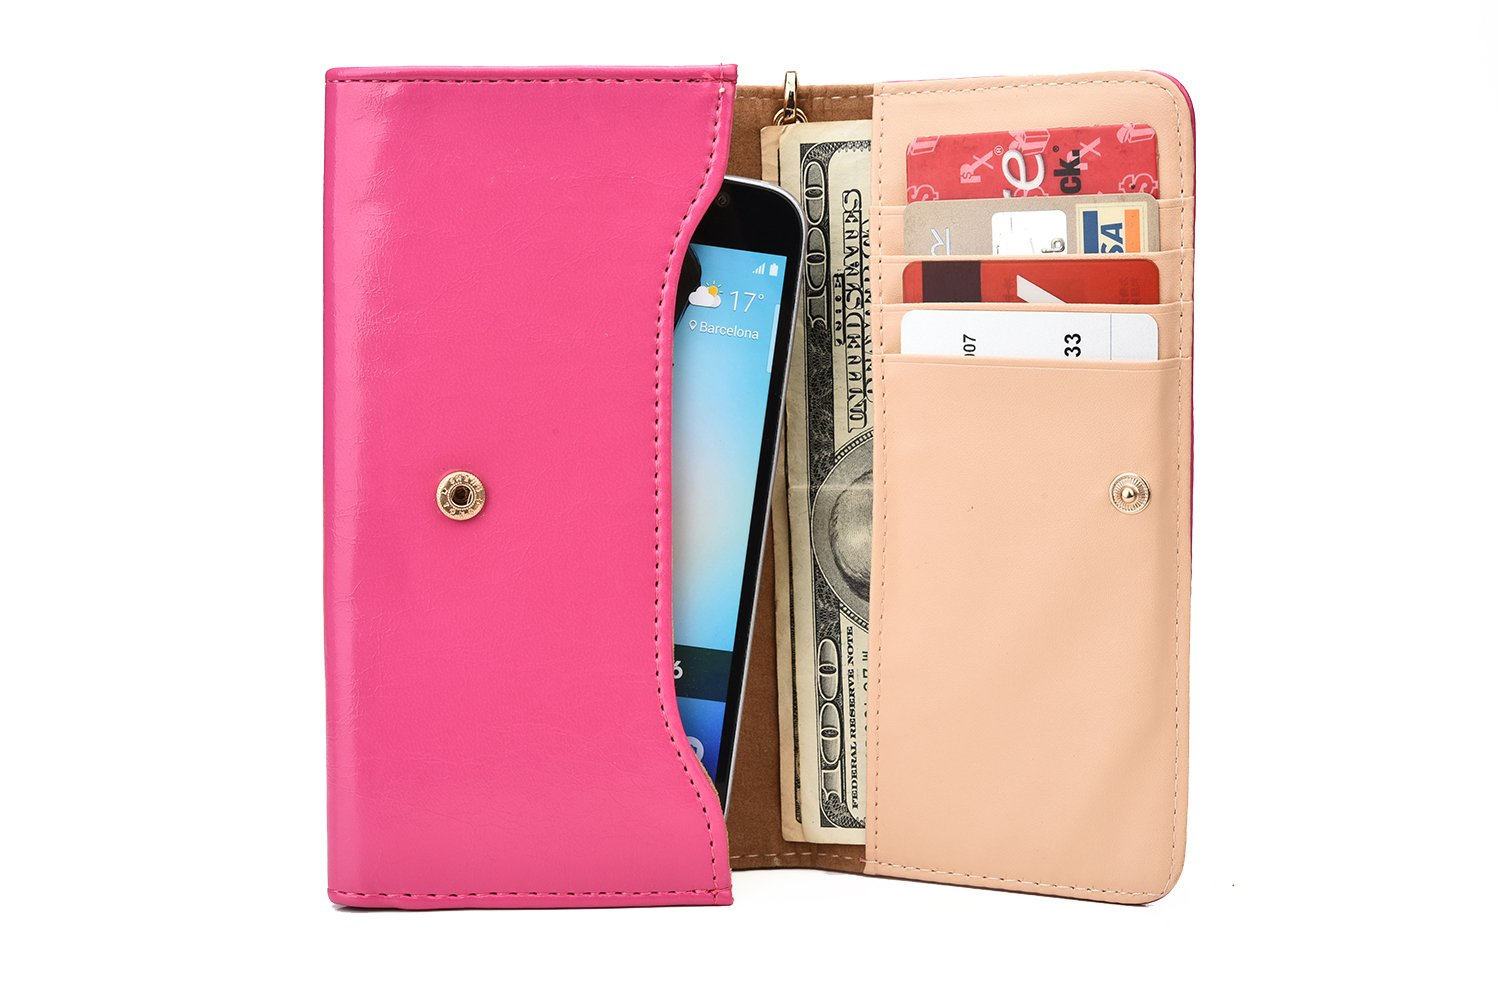 Amazon.com: Cooper Cases(TM) Flirt Universal QMobile Noir A15 3D/A75/A500/A750 Smartphone Wallet Case in Pink (Wrist Strap, Credit Card/ID Slots, ...